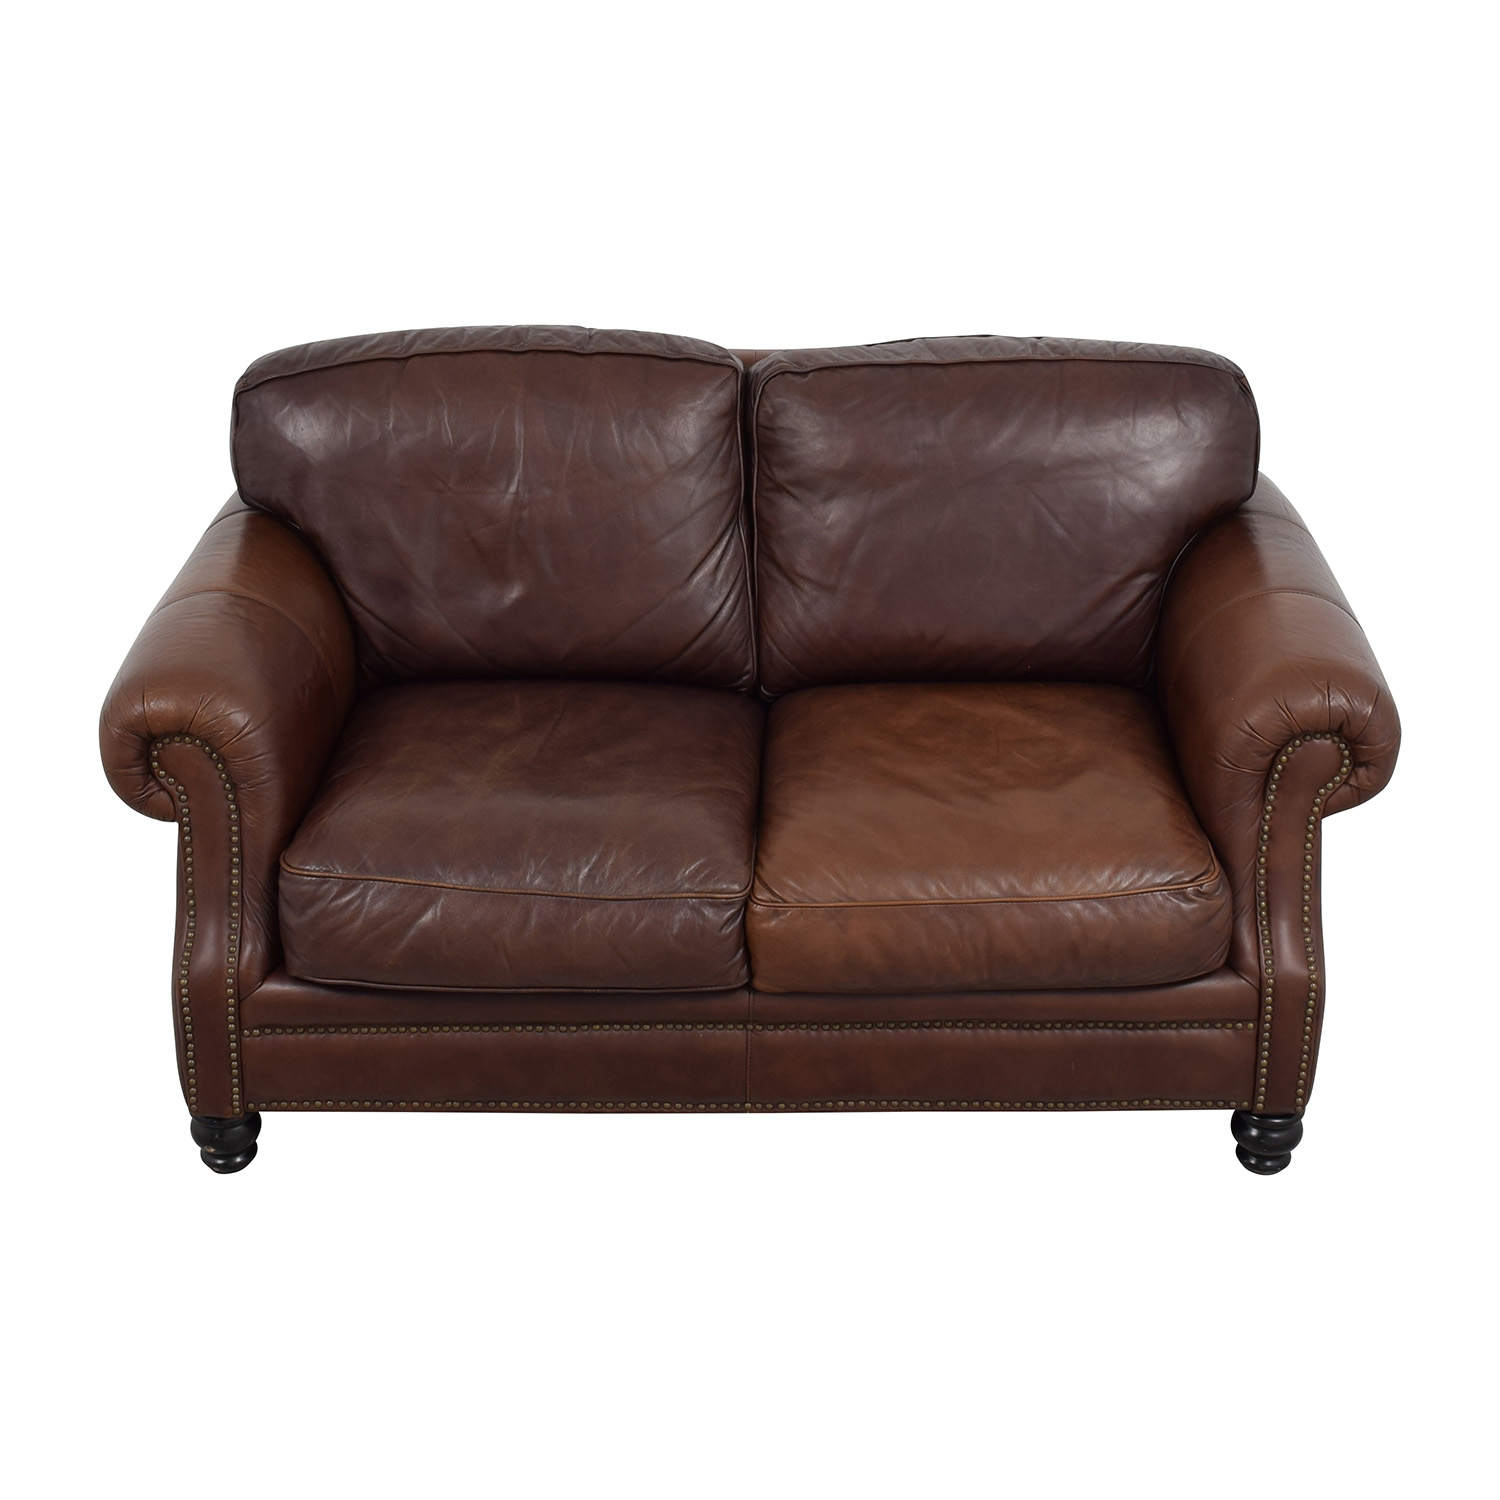 Sofas second hand for Brown leather couch with studs